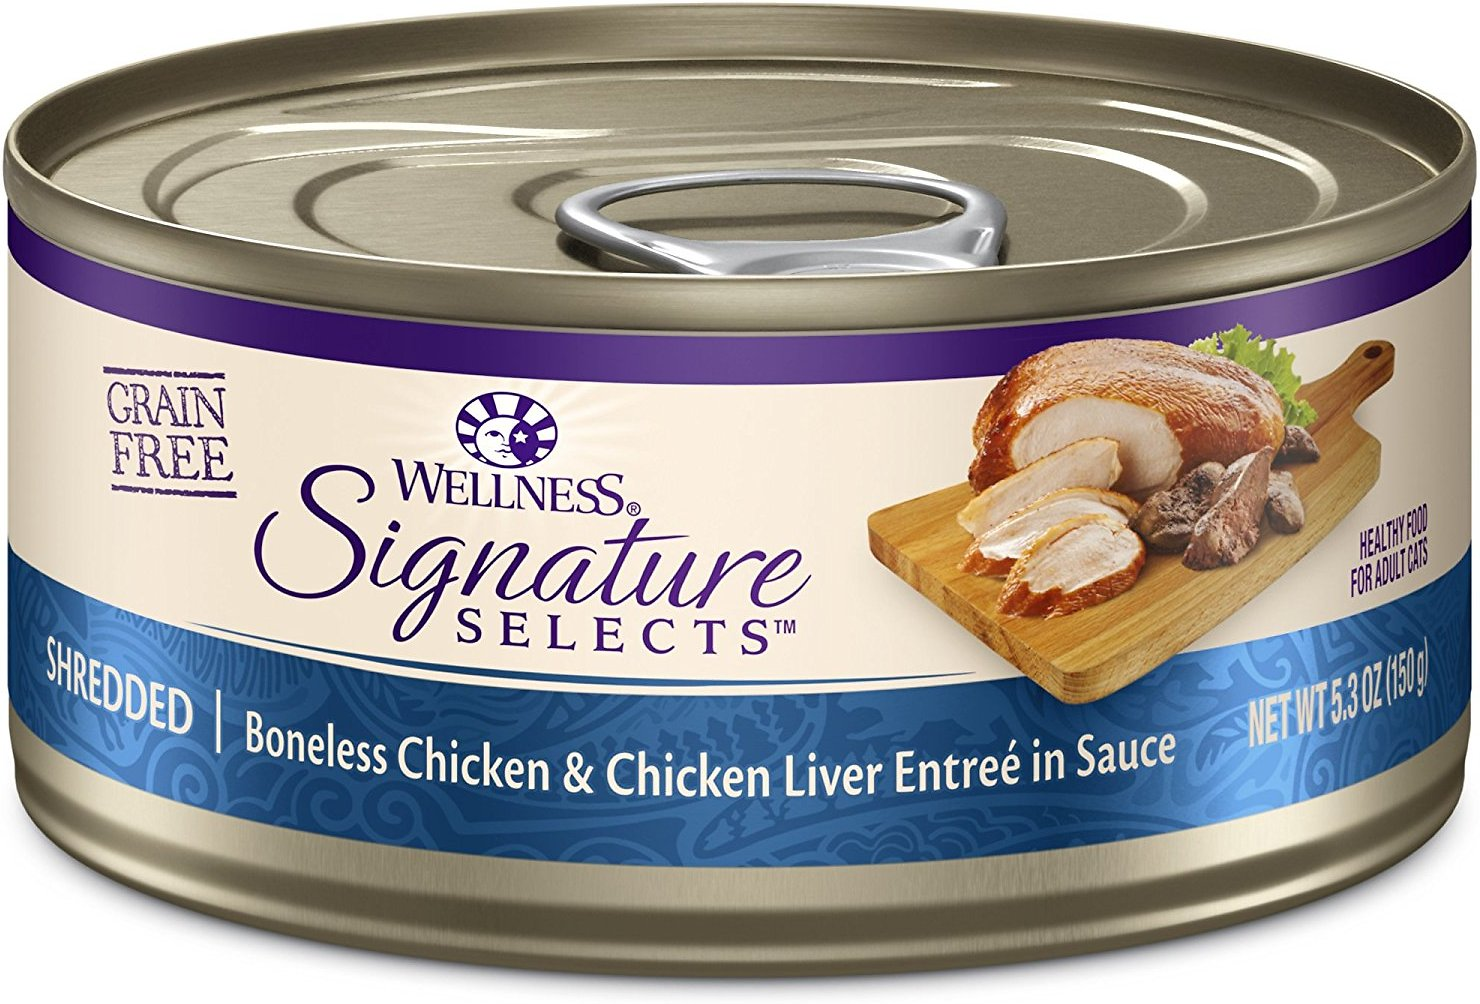 Wellness CORE Signature Selects Shredded Boneless Chicken & Chicken Liver Entree in Sauce Grain-Free Canned Cat Food, 2.8-oz